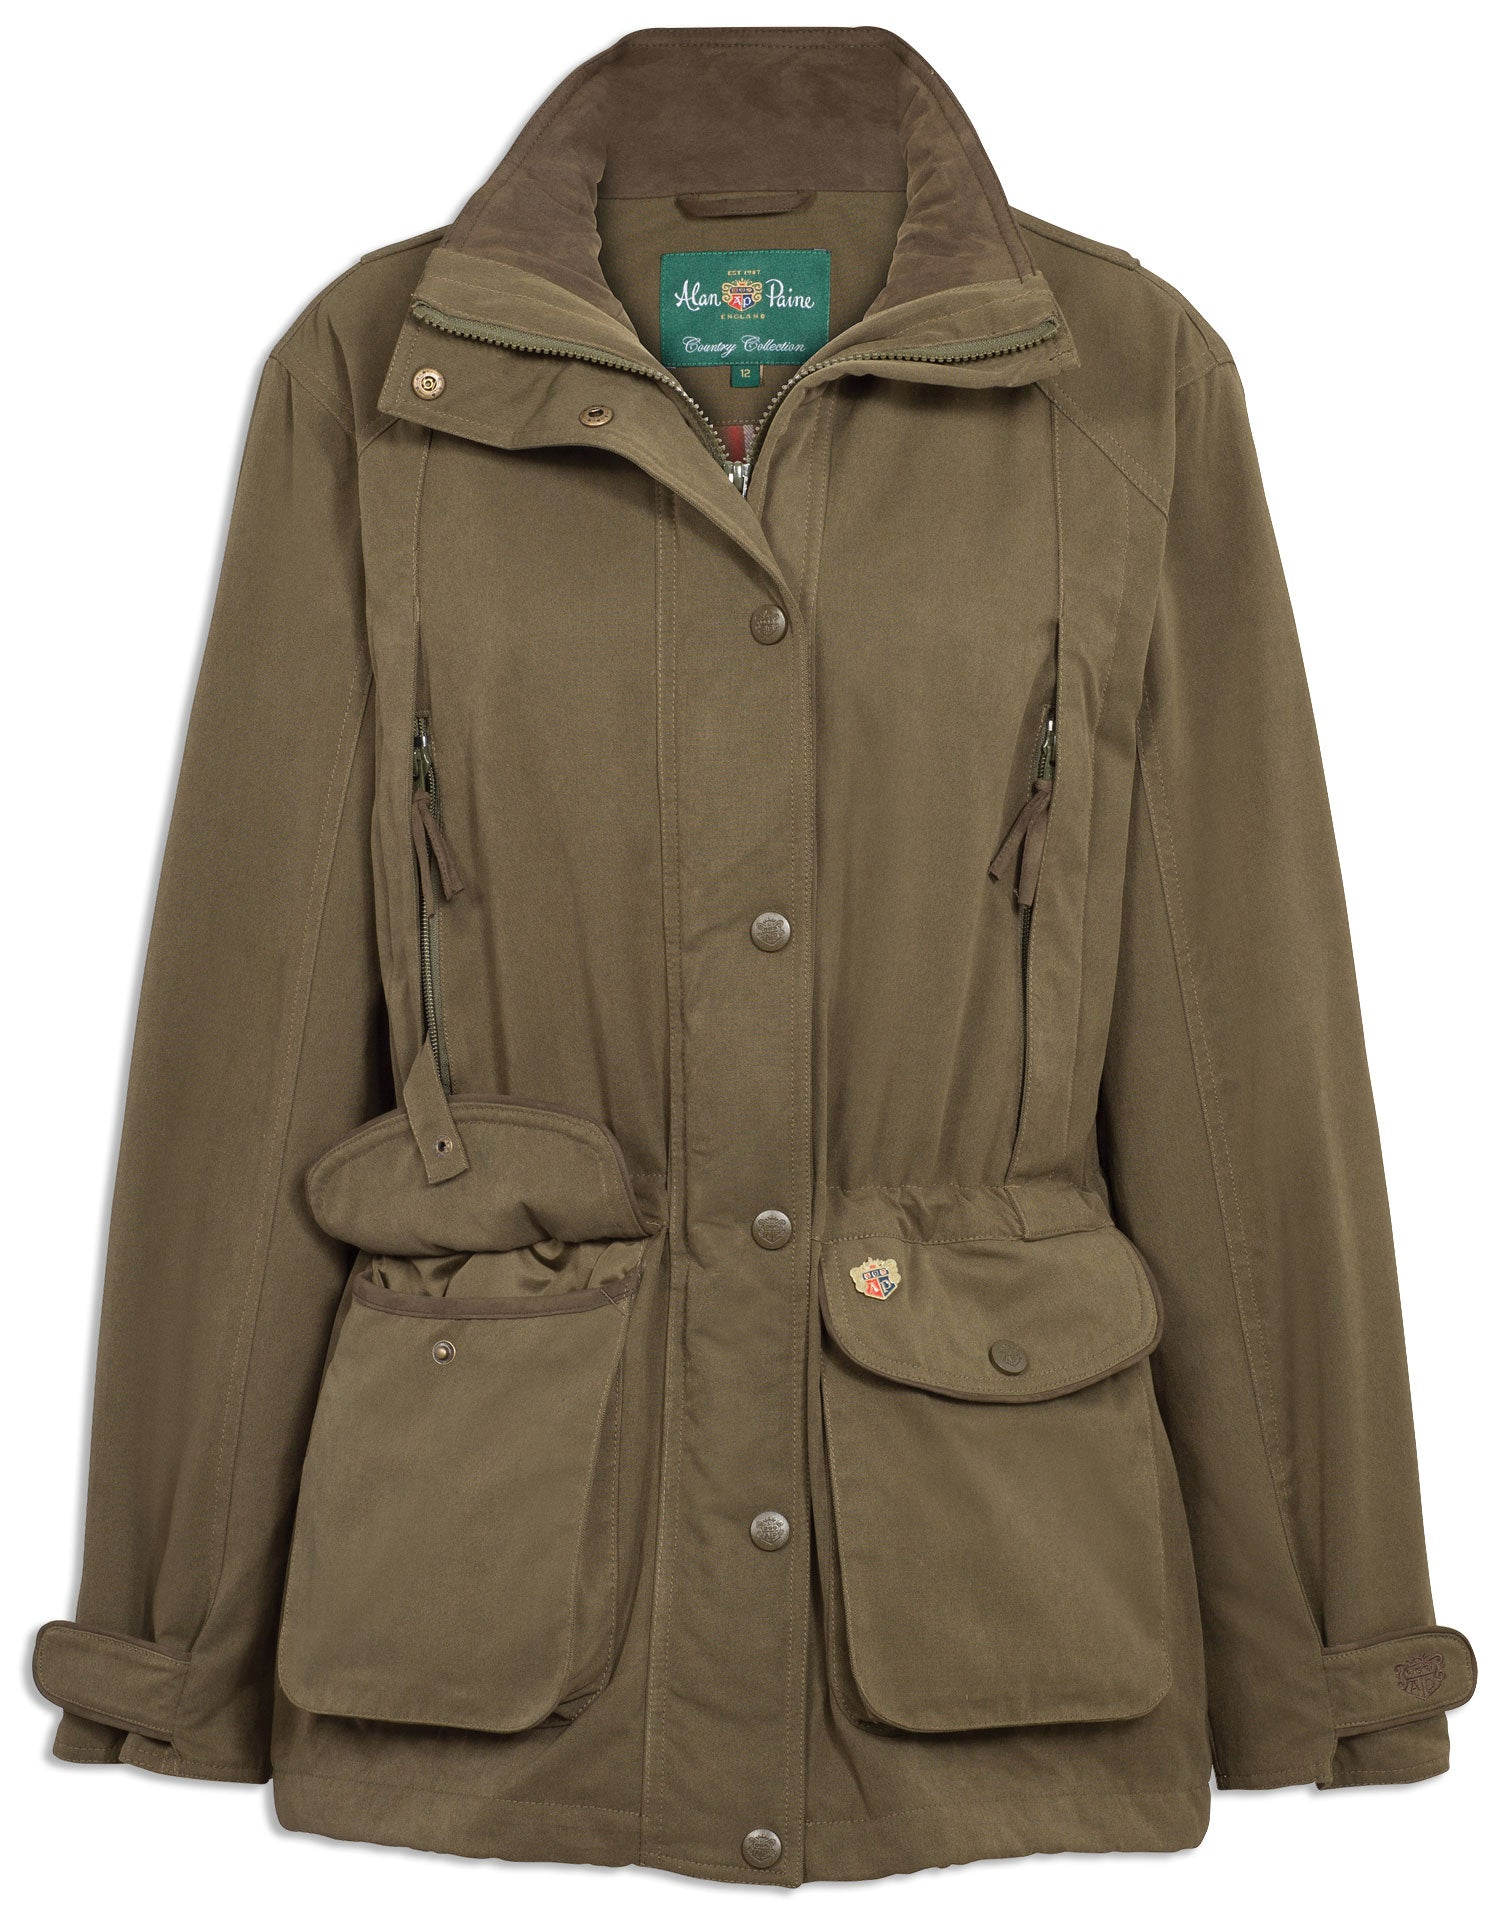 50540fa3dc715 Alan Paine Dunswell Ladies Waterproof Shooting Coat in olive. woman wearing  Alan Paine ...